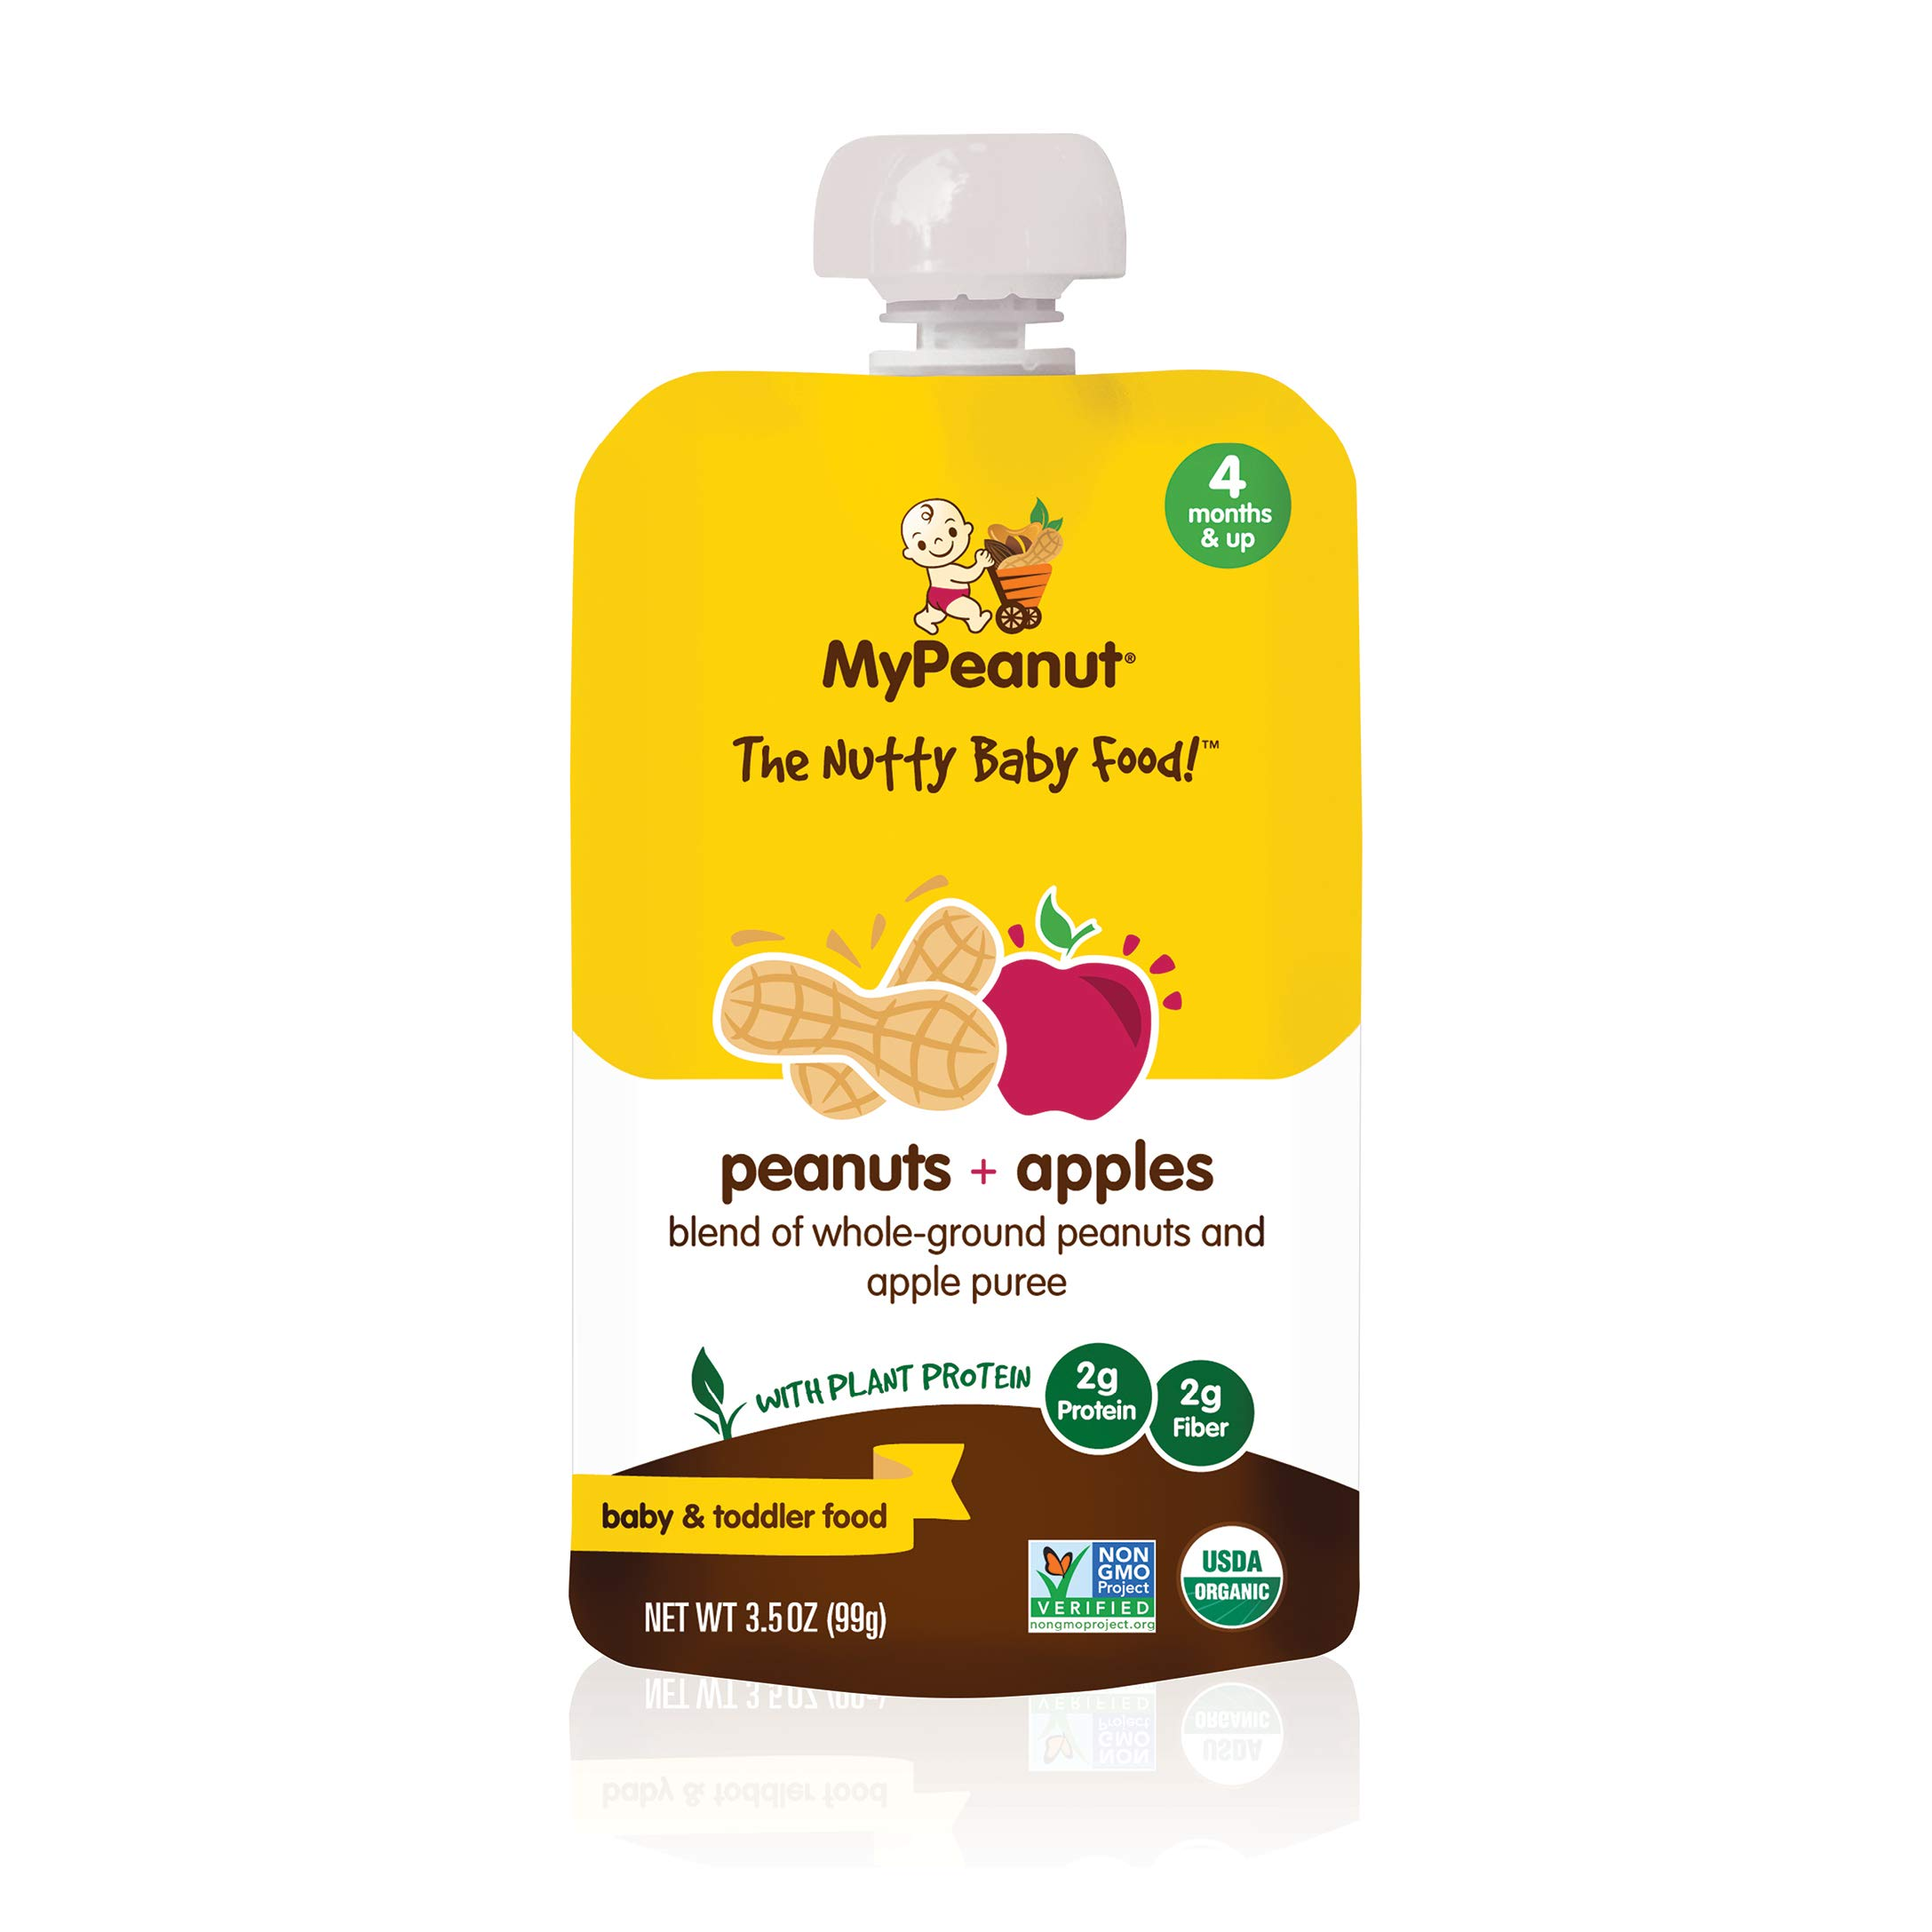 MyPeanut Baby Food, Organic Stage 1 Peanut and Apple Puree for Introducing and Feeding Babies and Toddlers Nuts, Non-GMO, BPA Free 3.5 oz Pouch, 18 Pack